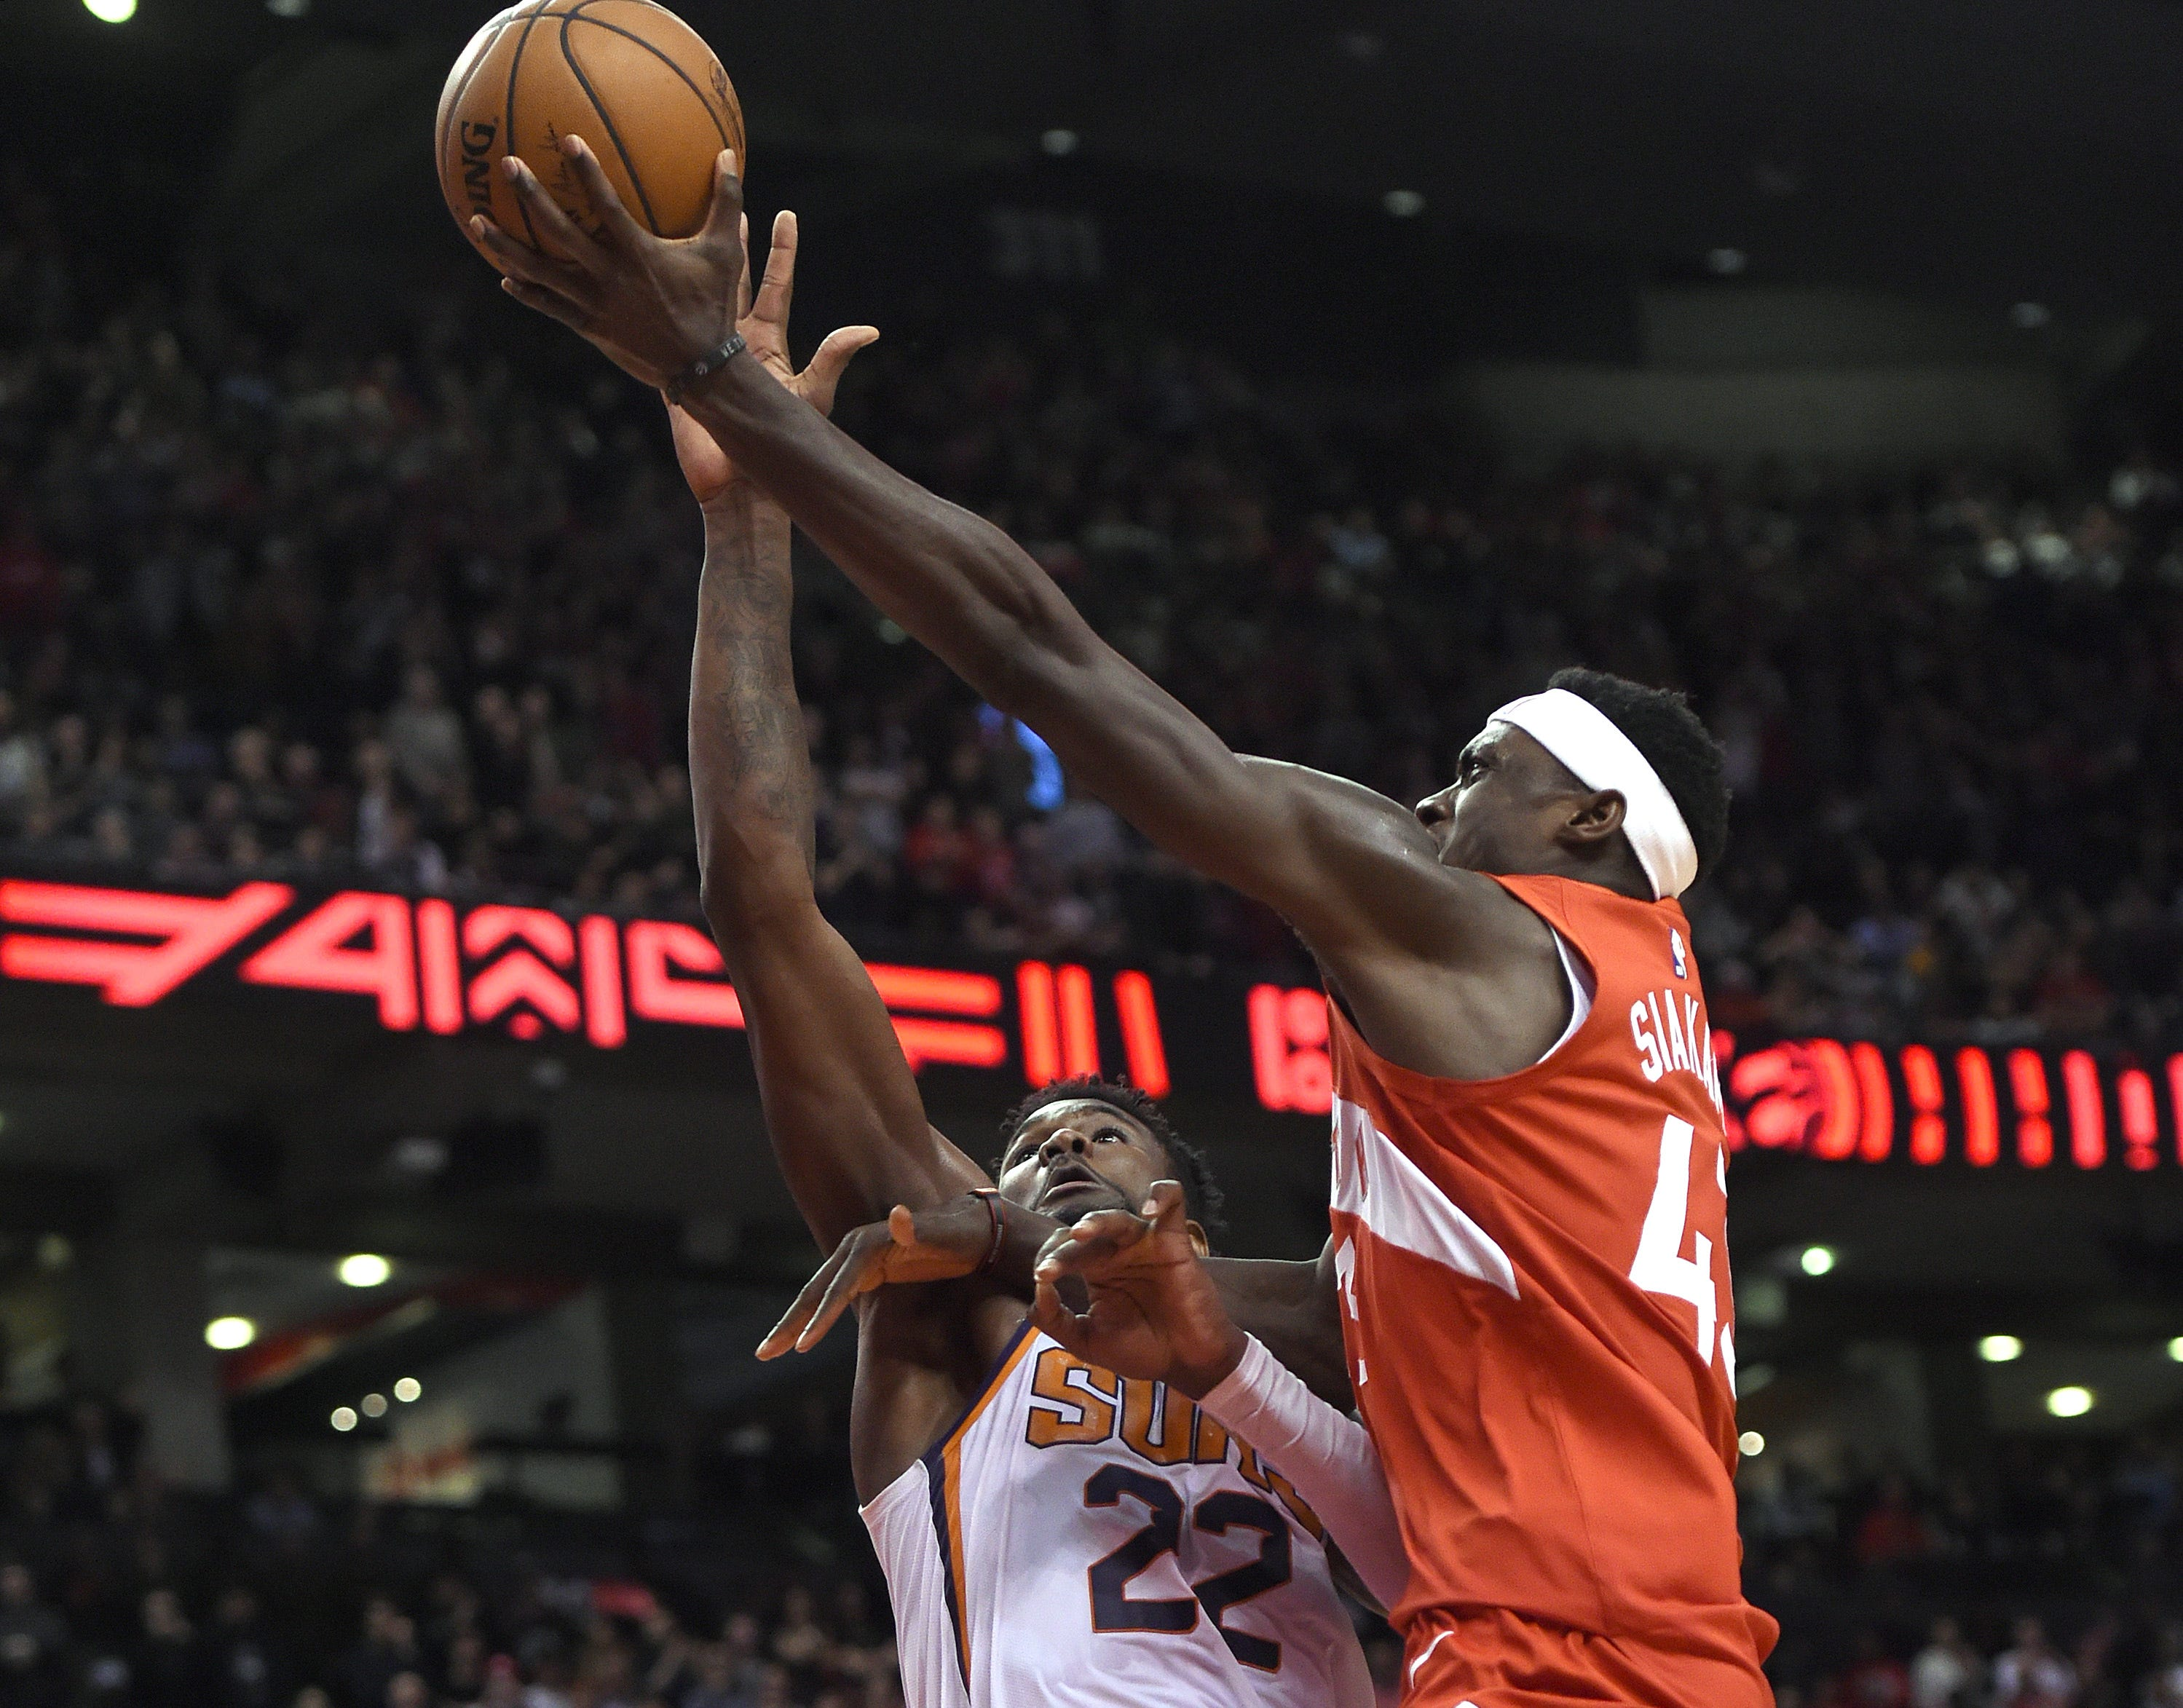 Jan. 17: Raptors forward Pascal Siakam (43) drives and puts in the winning bucket at the buzzer over Suns defender Deandre Ayton (22) in Toronto.